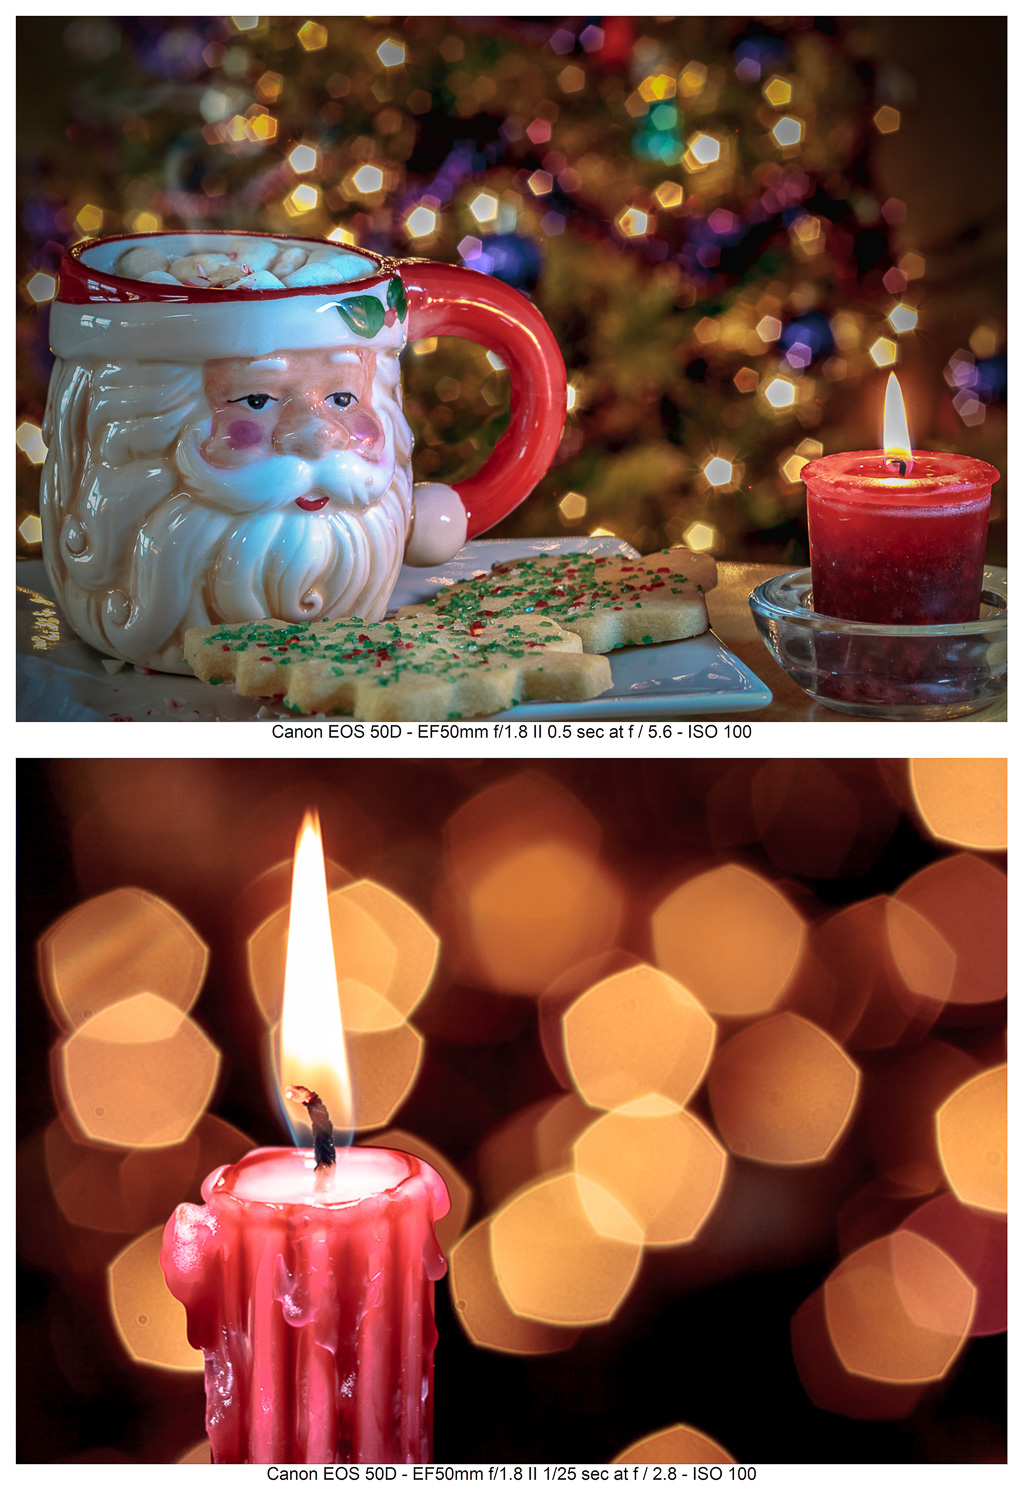 Specular Light Bokeh effects with a wide aperture